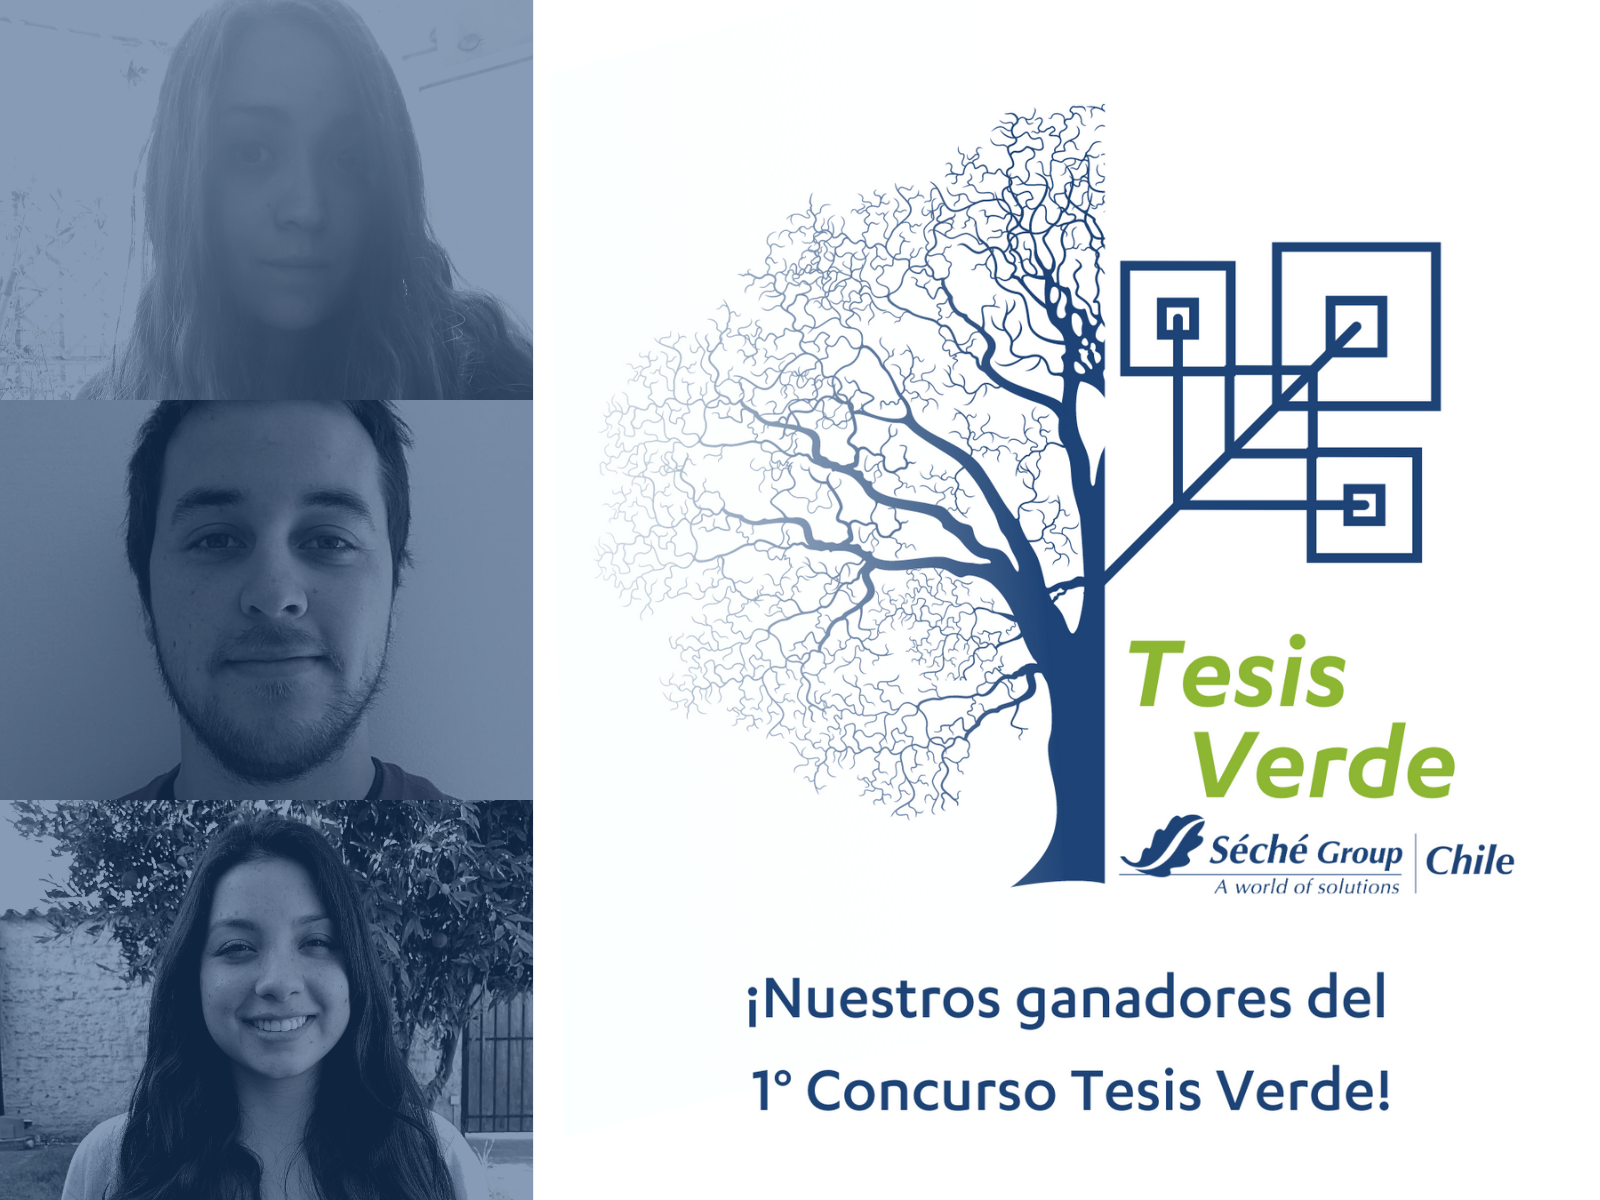 Tesis Verde - Seche Group Chile